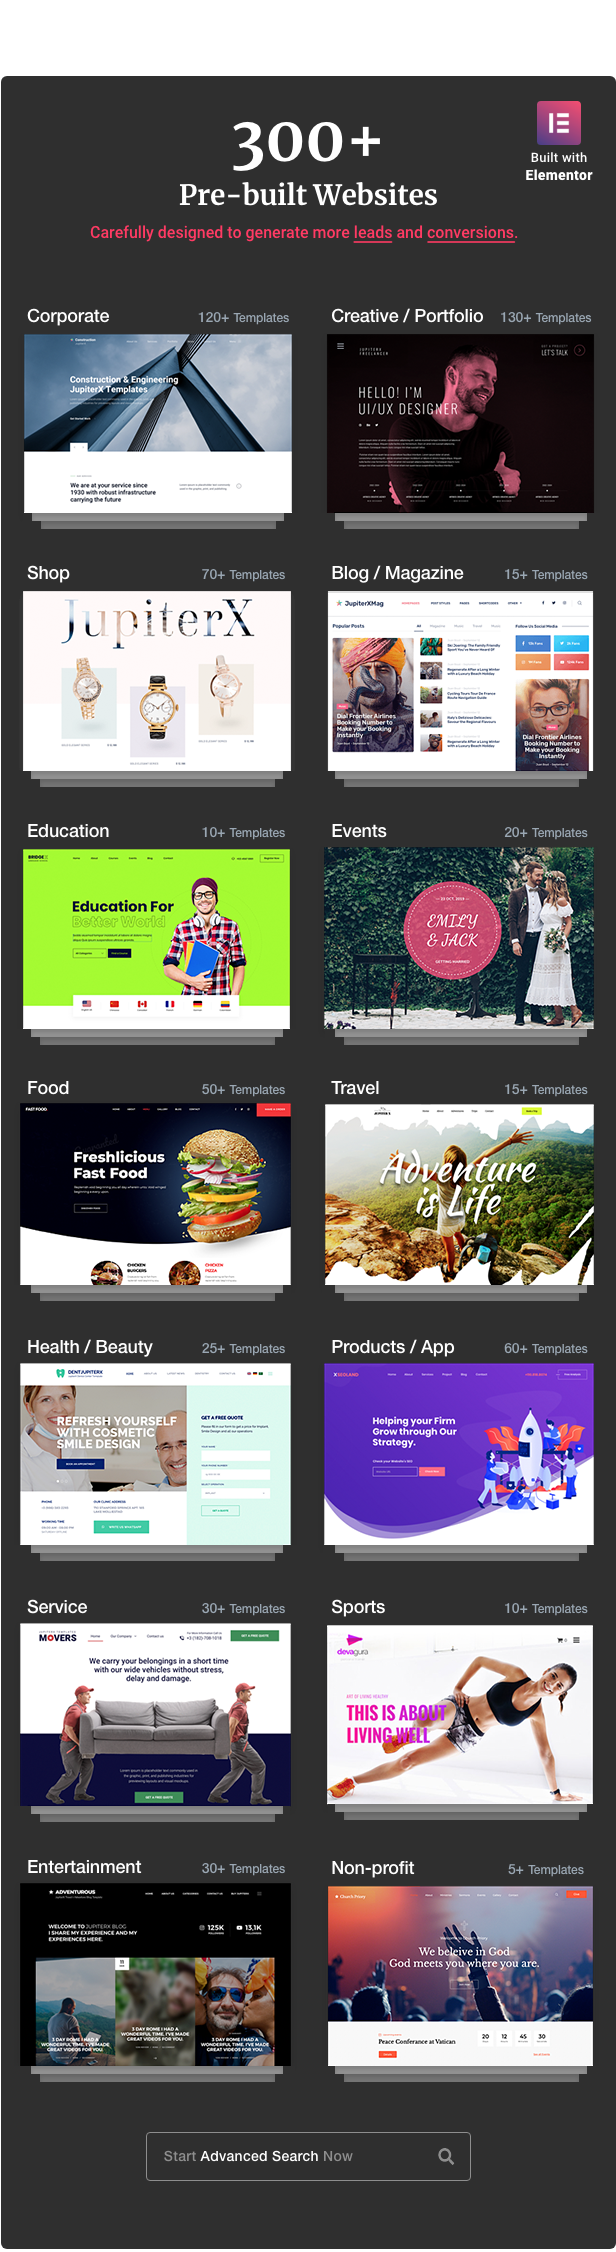 Jupiter - Multi-Purpose Responsive Theme - 4